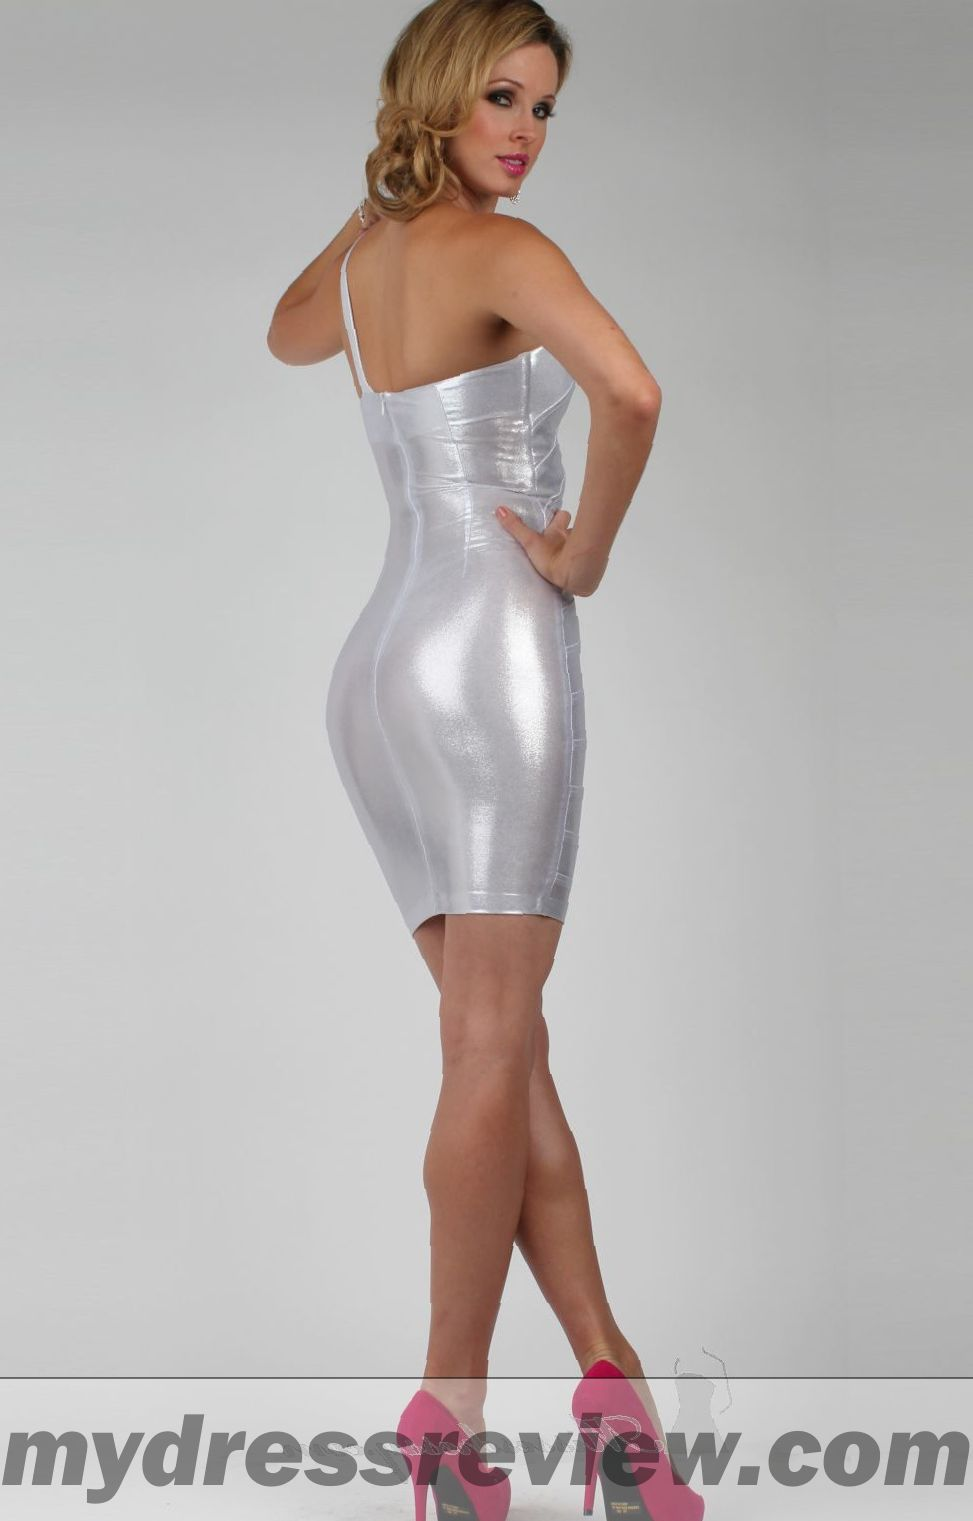 Dress Metallic - Review Clothing Brand